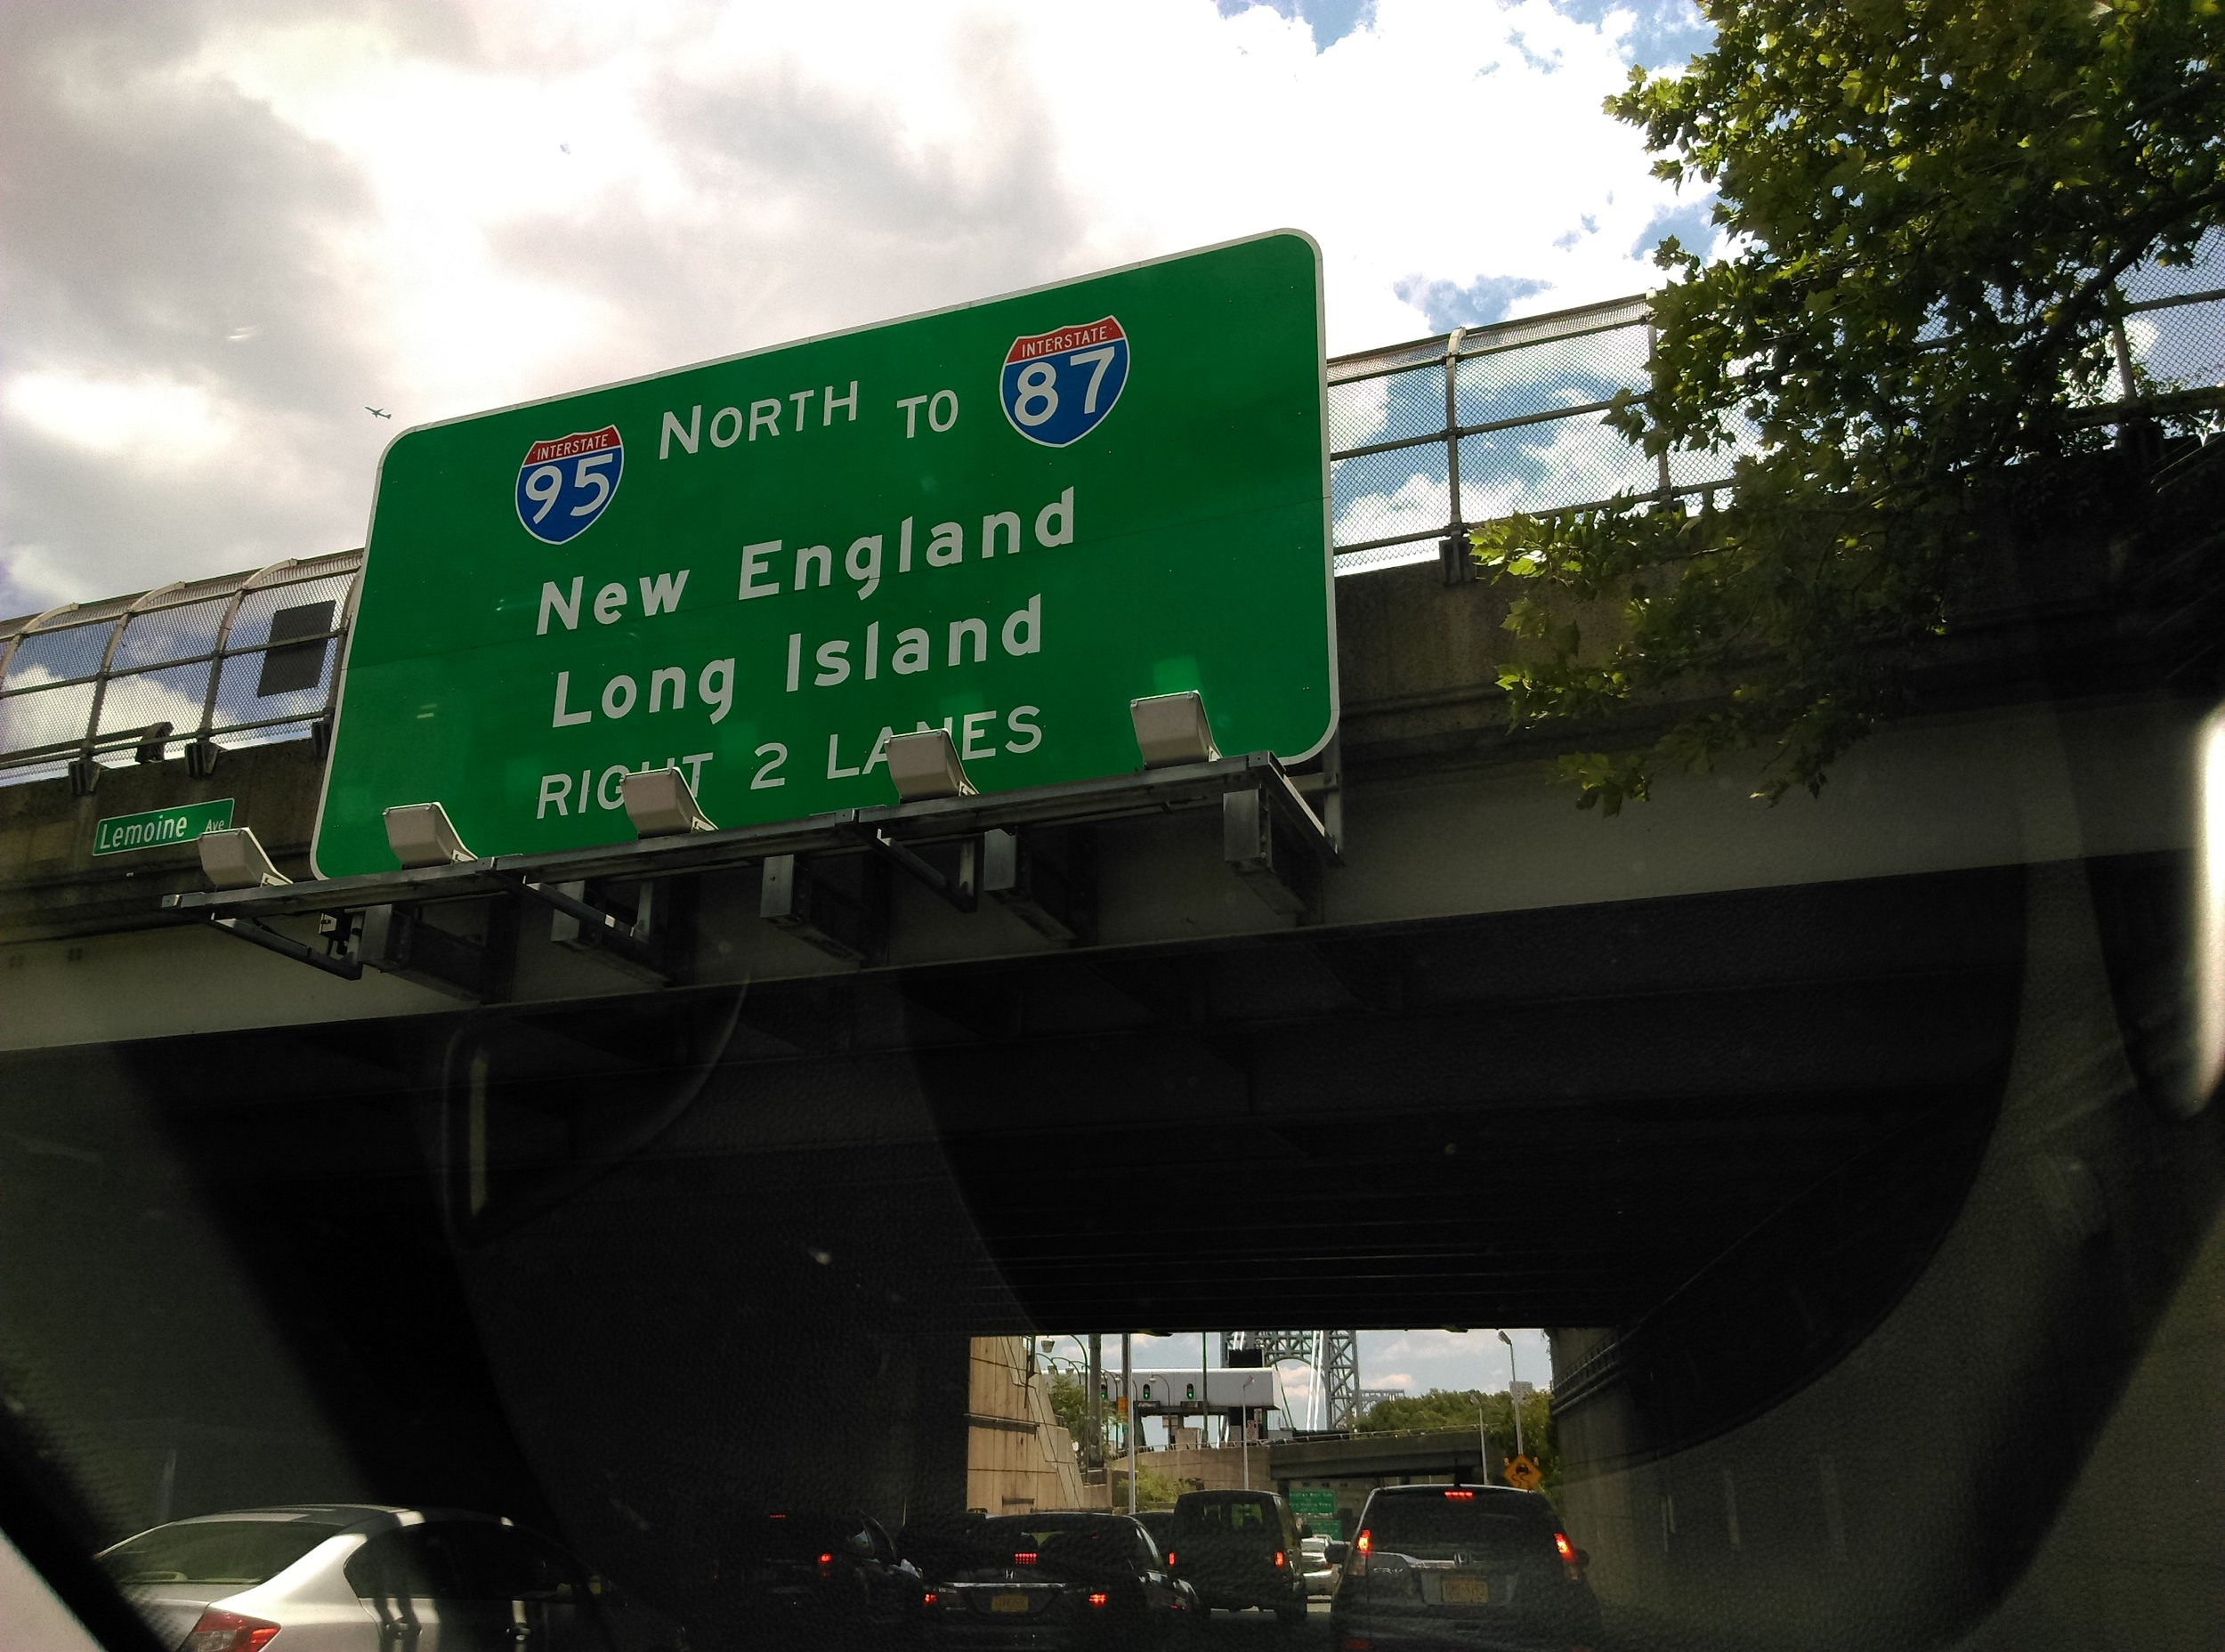 Driving thru NYC and the Bronx Expressway :-) heading north to my photo 'home'